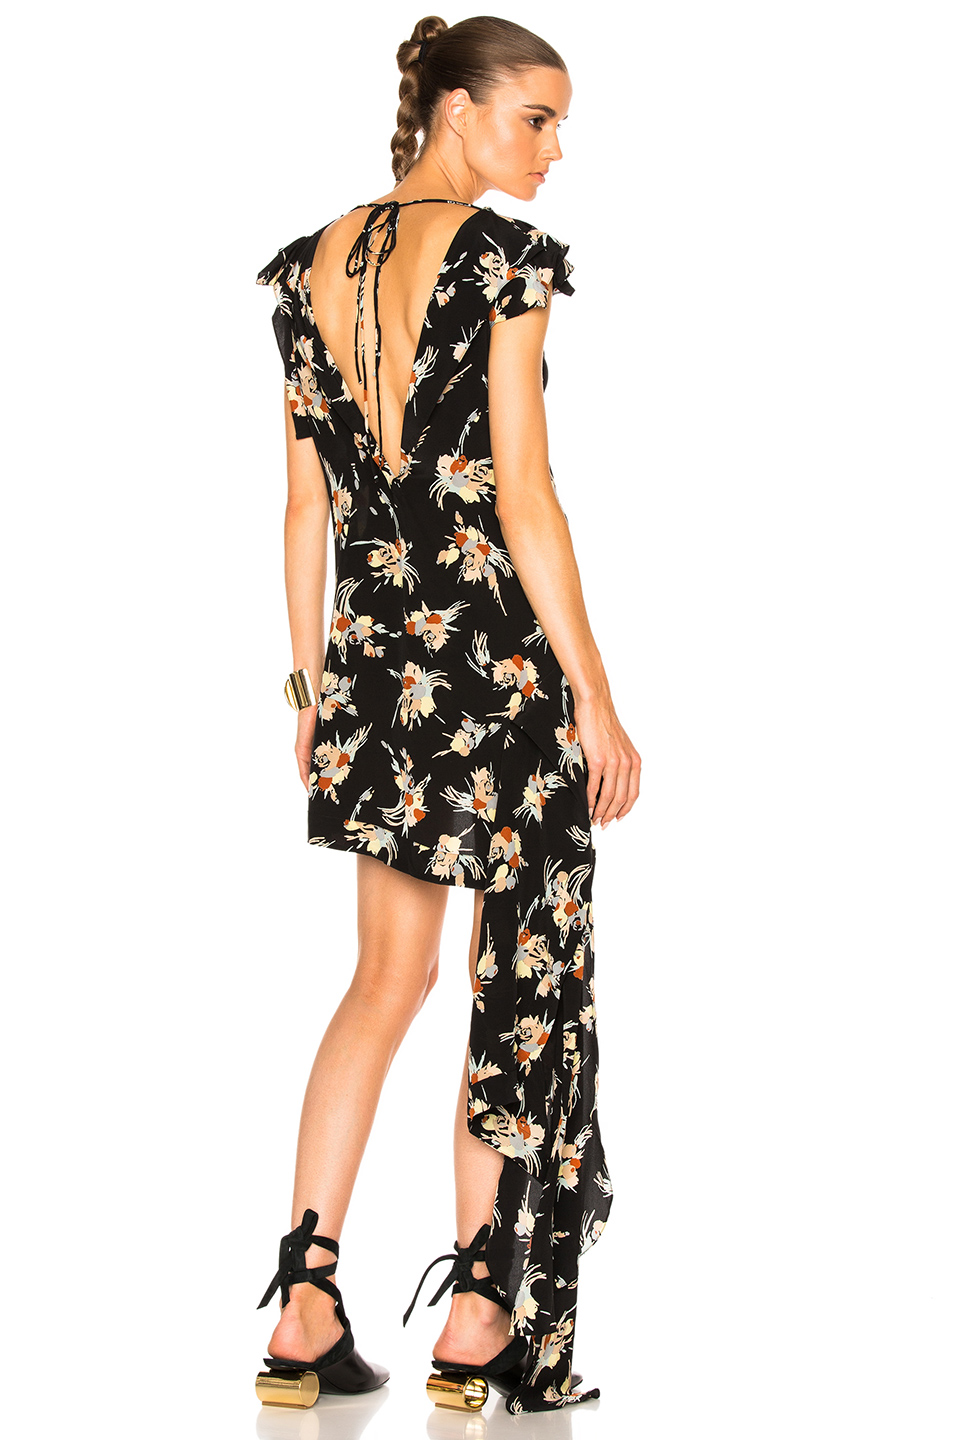 Marni Sleeveless Printed Tunic in Black,Floral